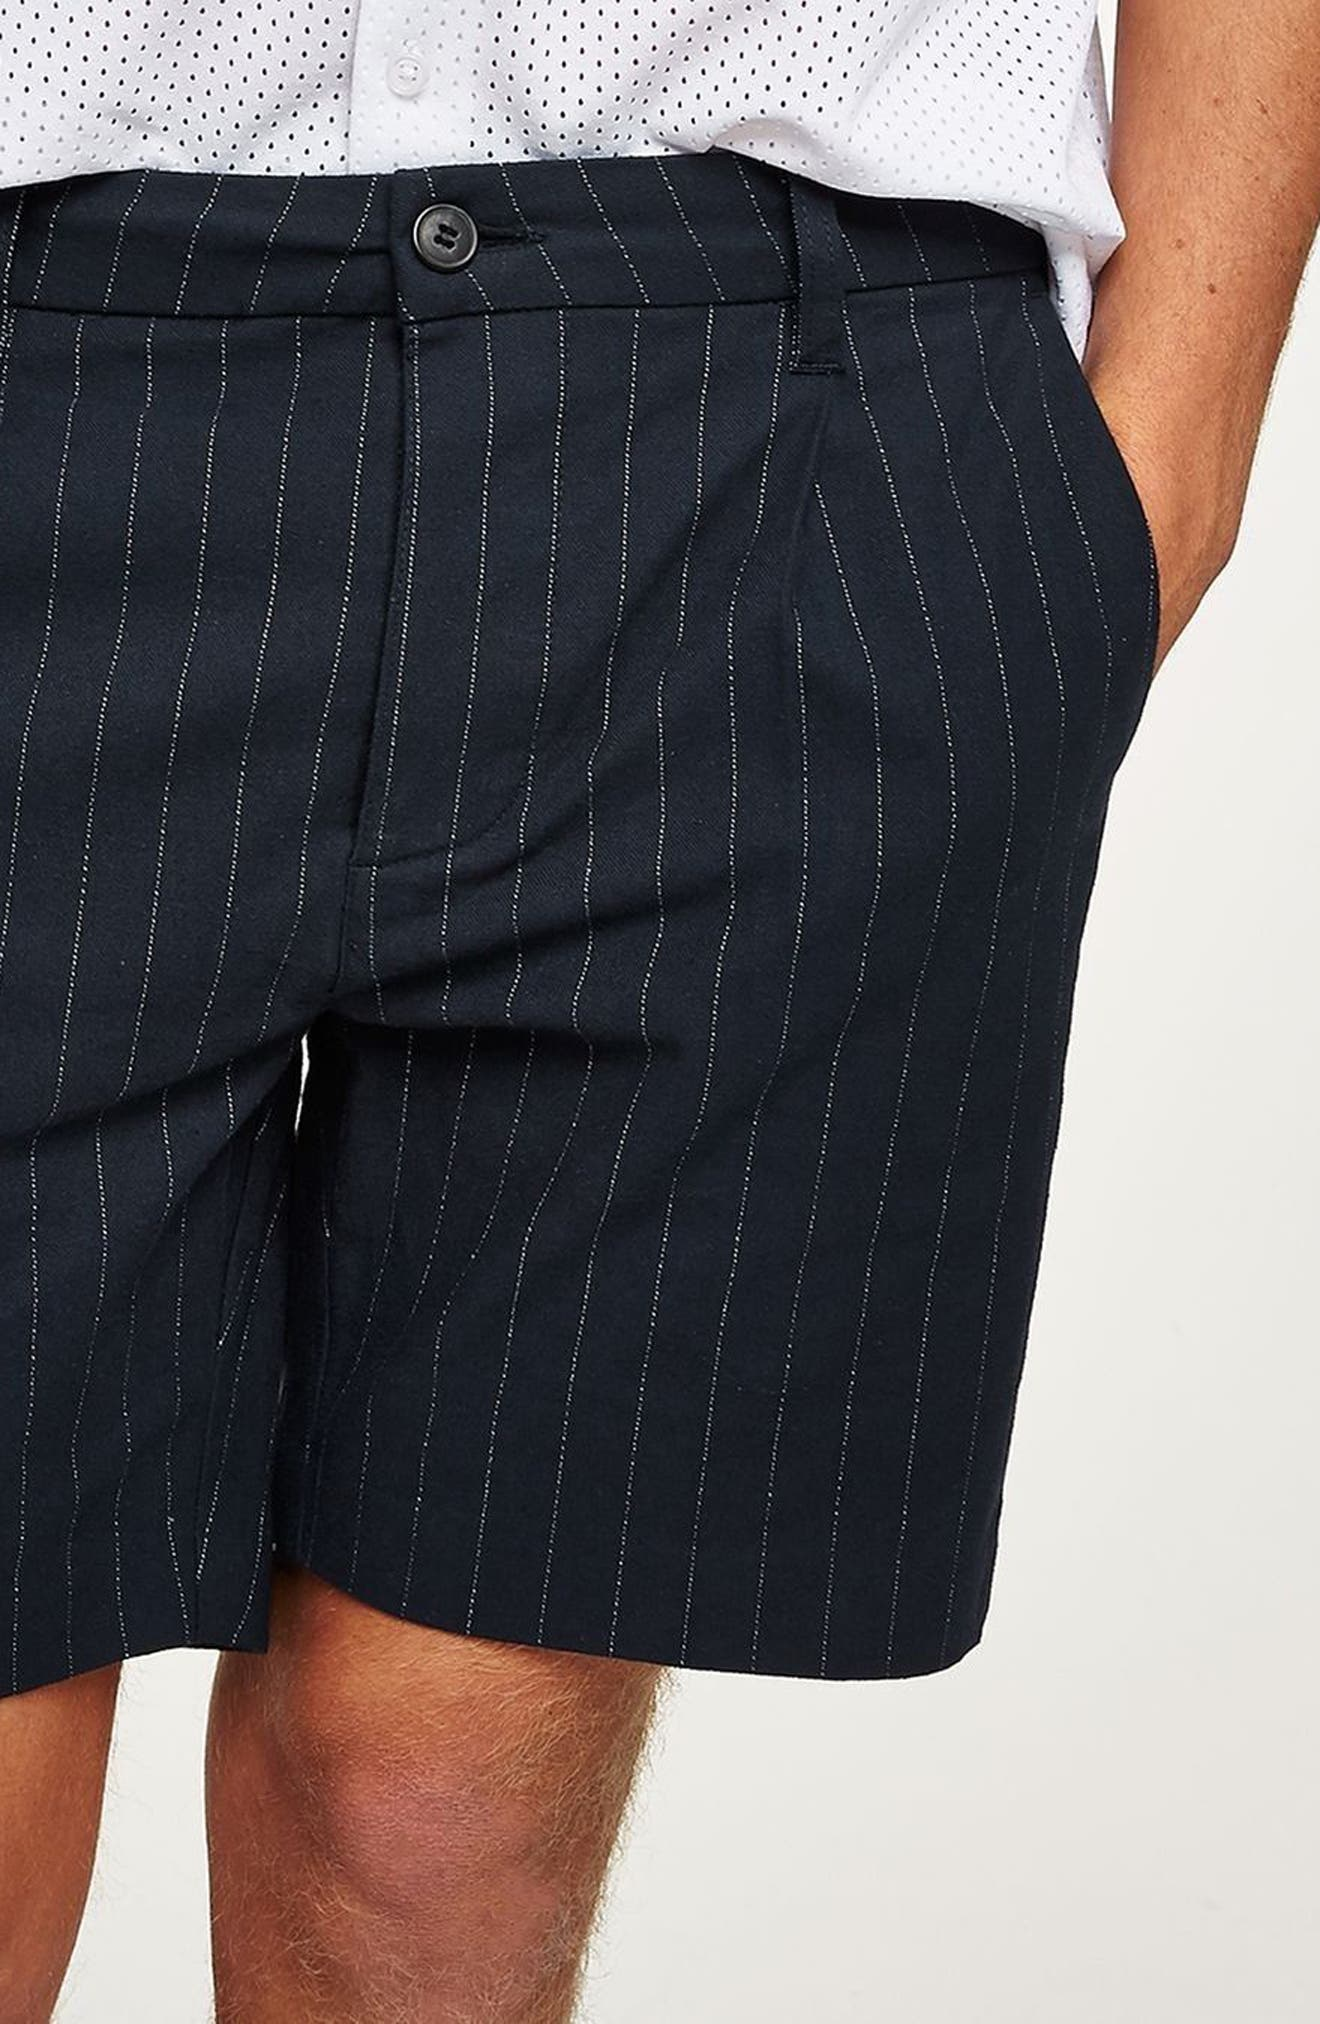 Pinstripe Shorts,                             Alternate thumbnail 2, color,                             Navy Blue